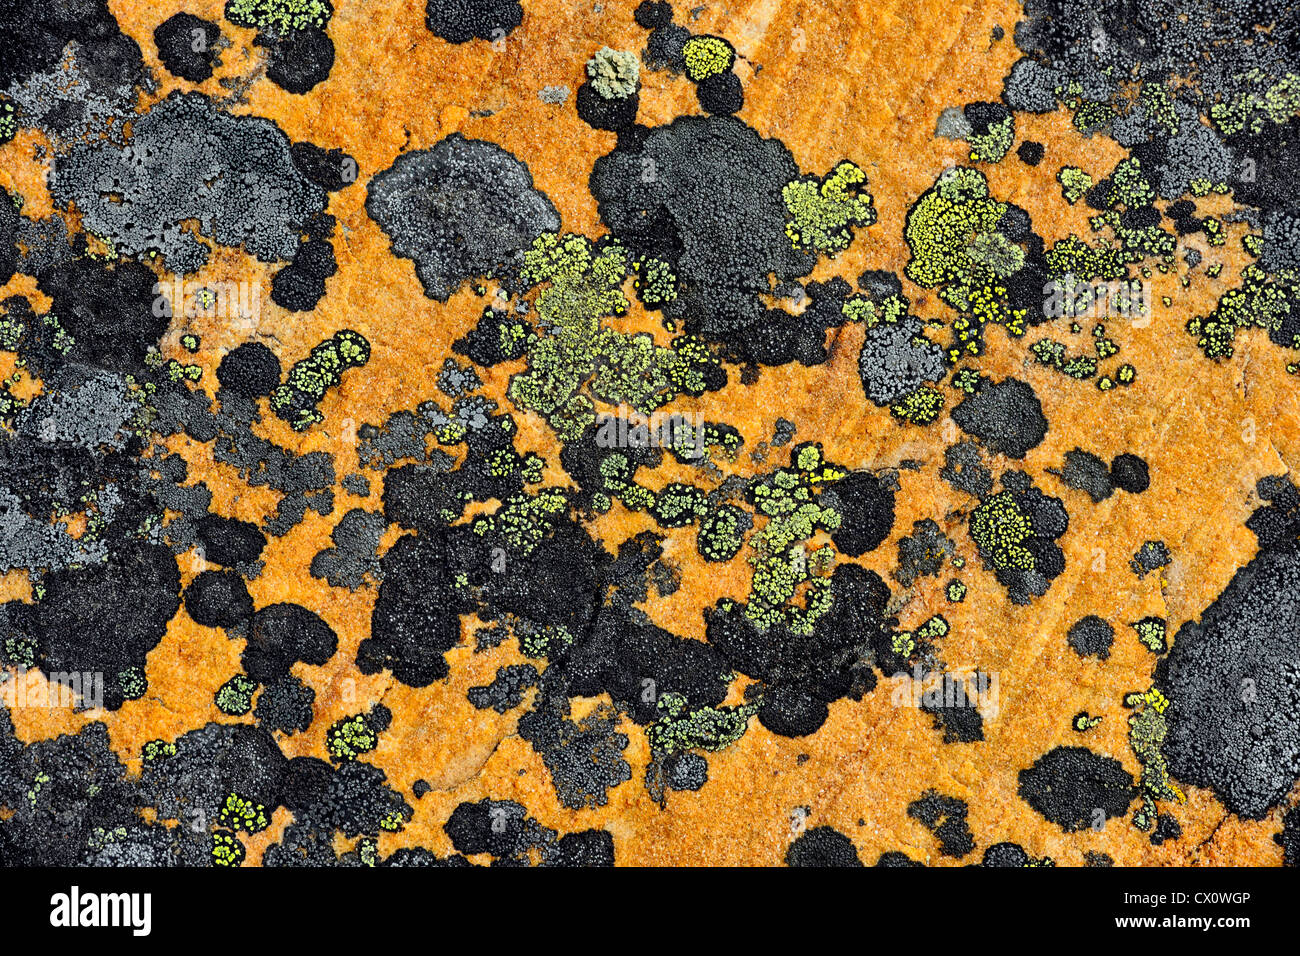 Rock lichen colonies on boulders brought down by a landslide, Jasper NP, Alberta, Canada - Stock Image